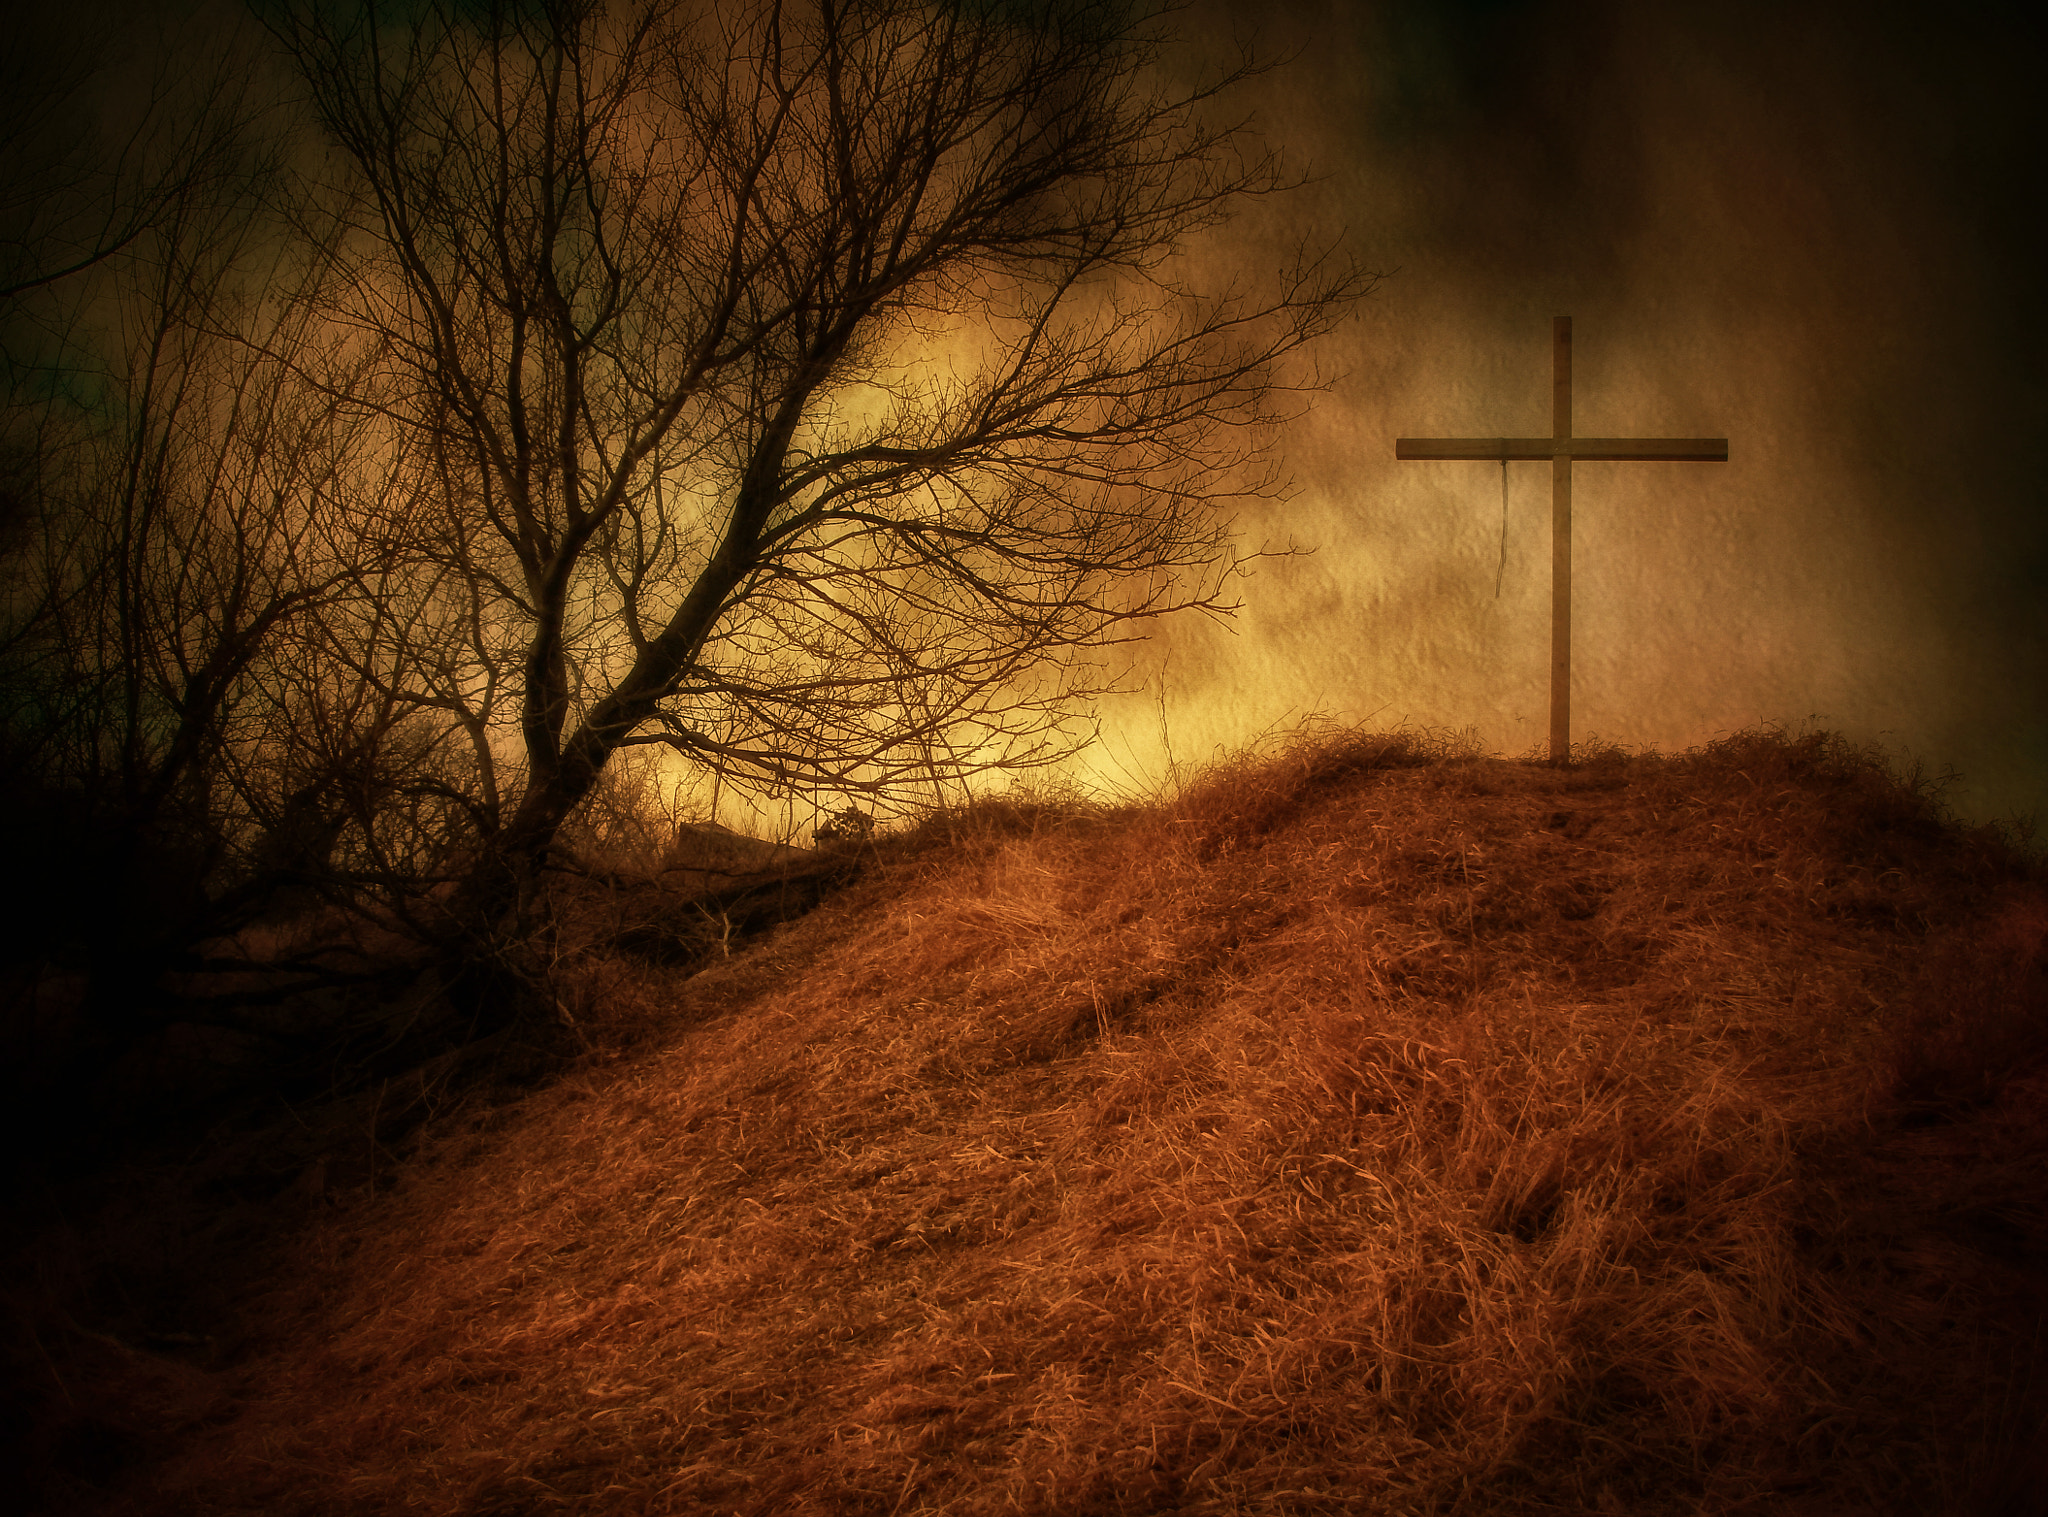 Photograph Salvation by Dave Linscheid on 500px